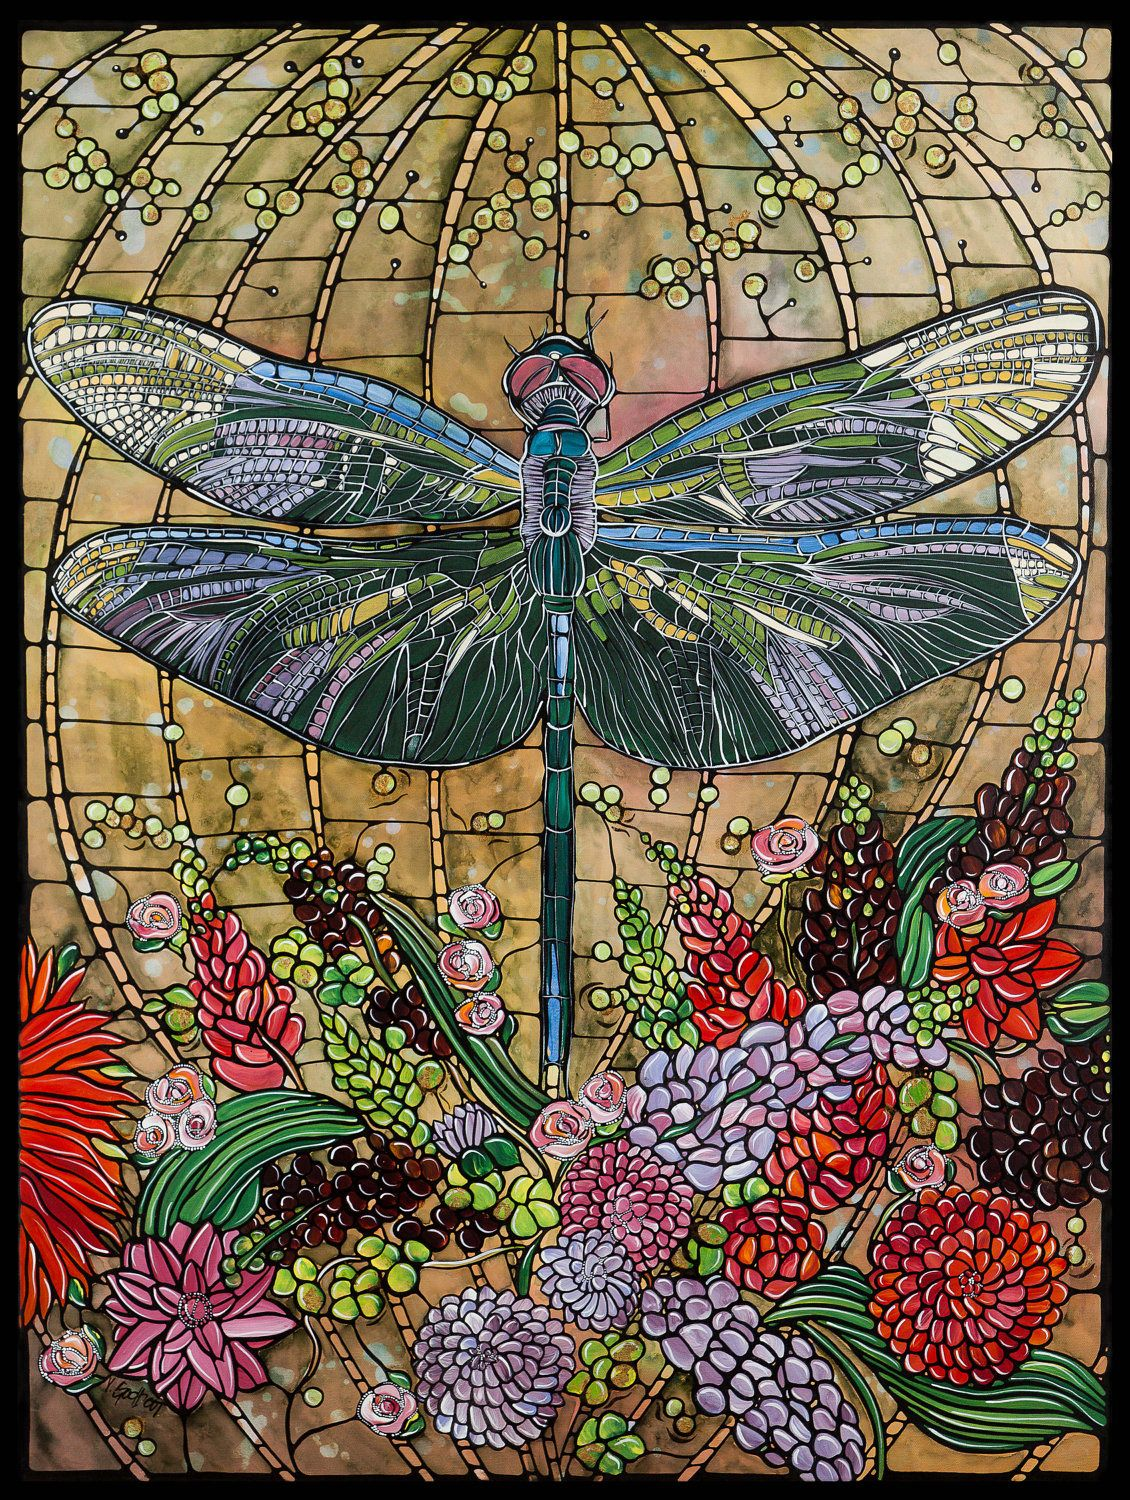 dragonfly art nouveau print home decor stained glassstudiovero